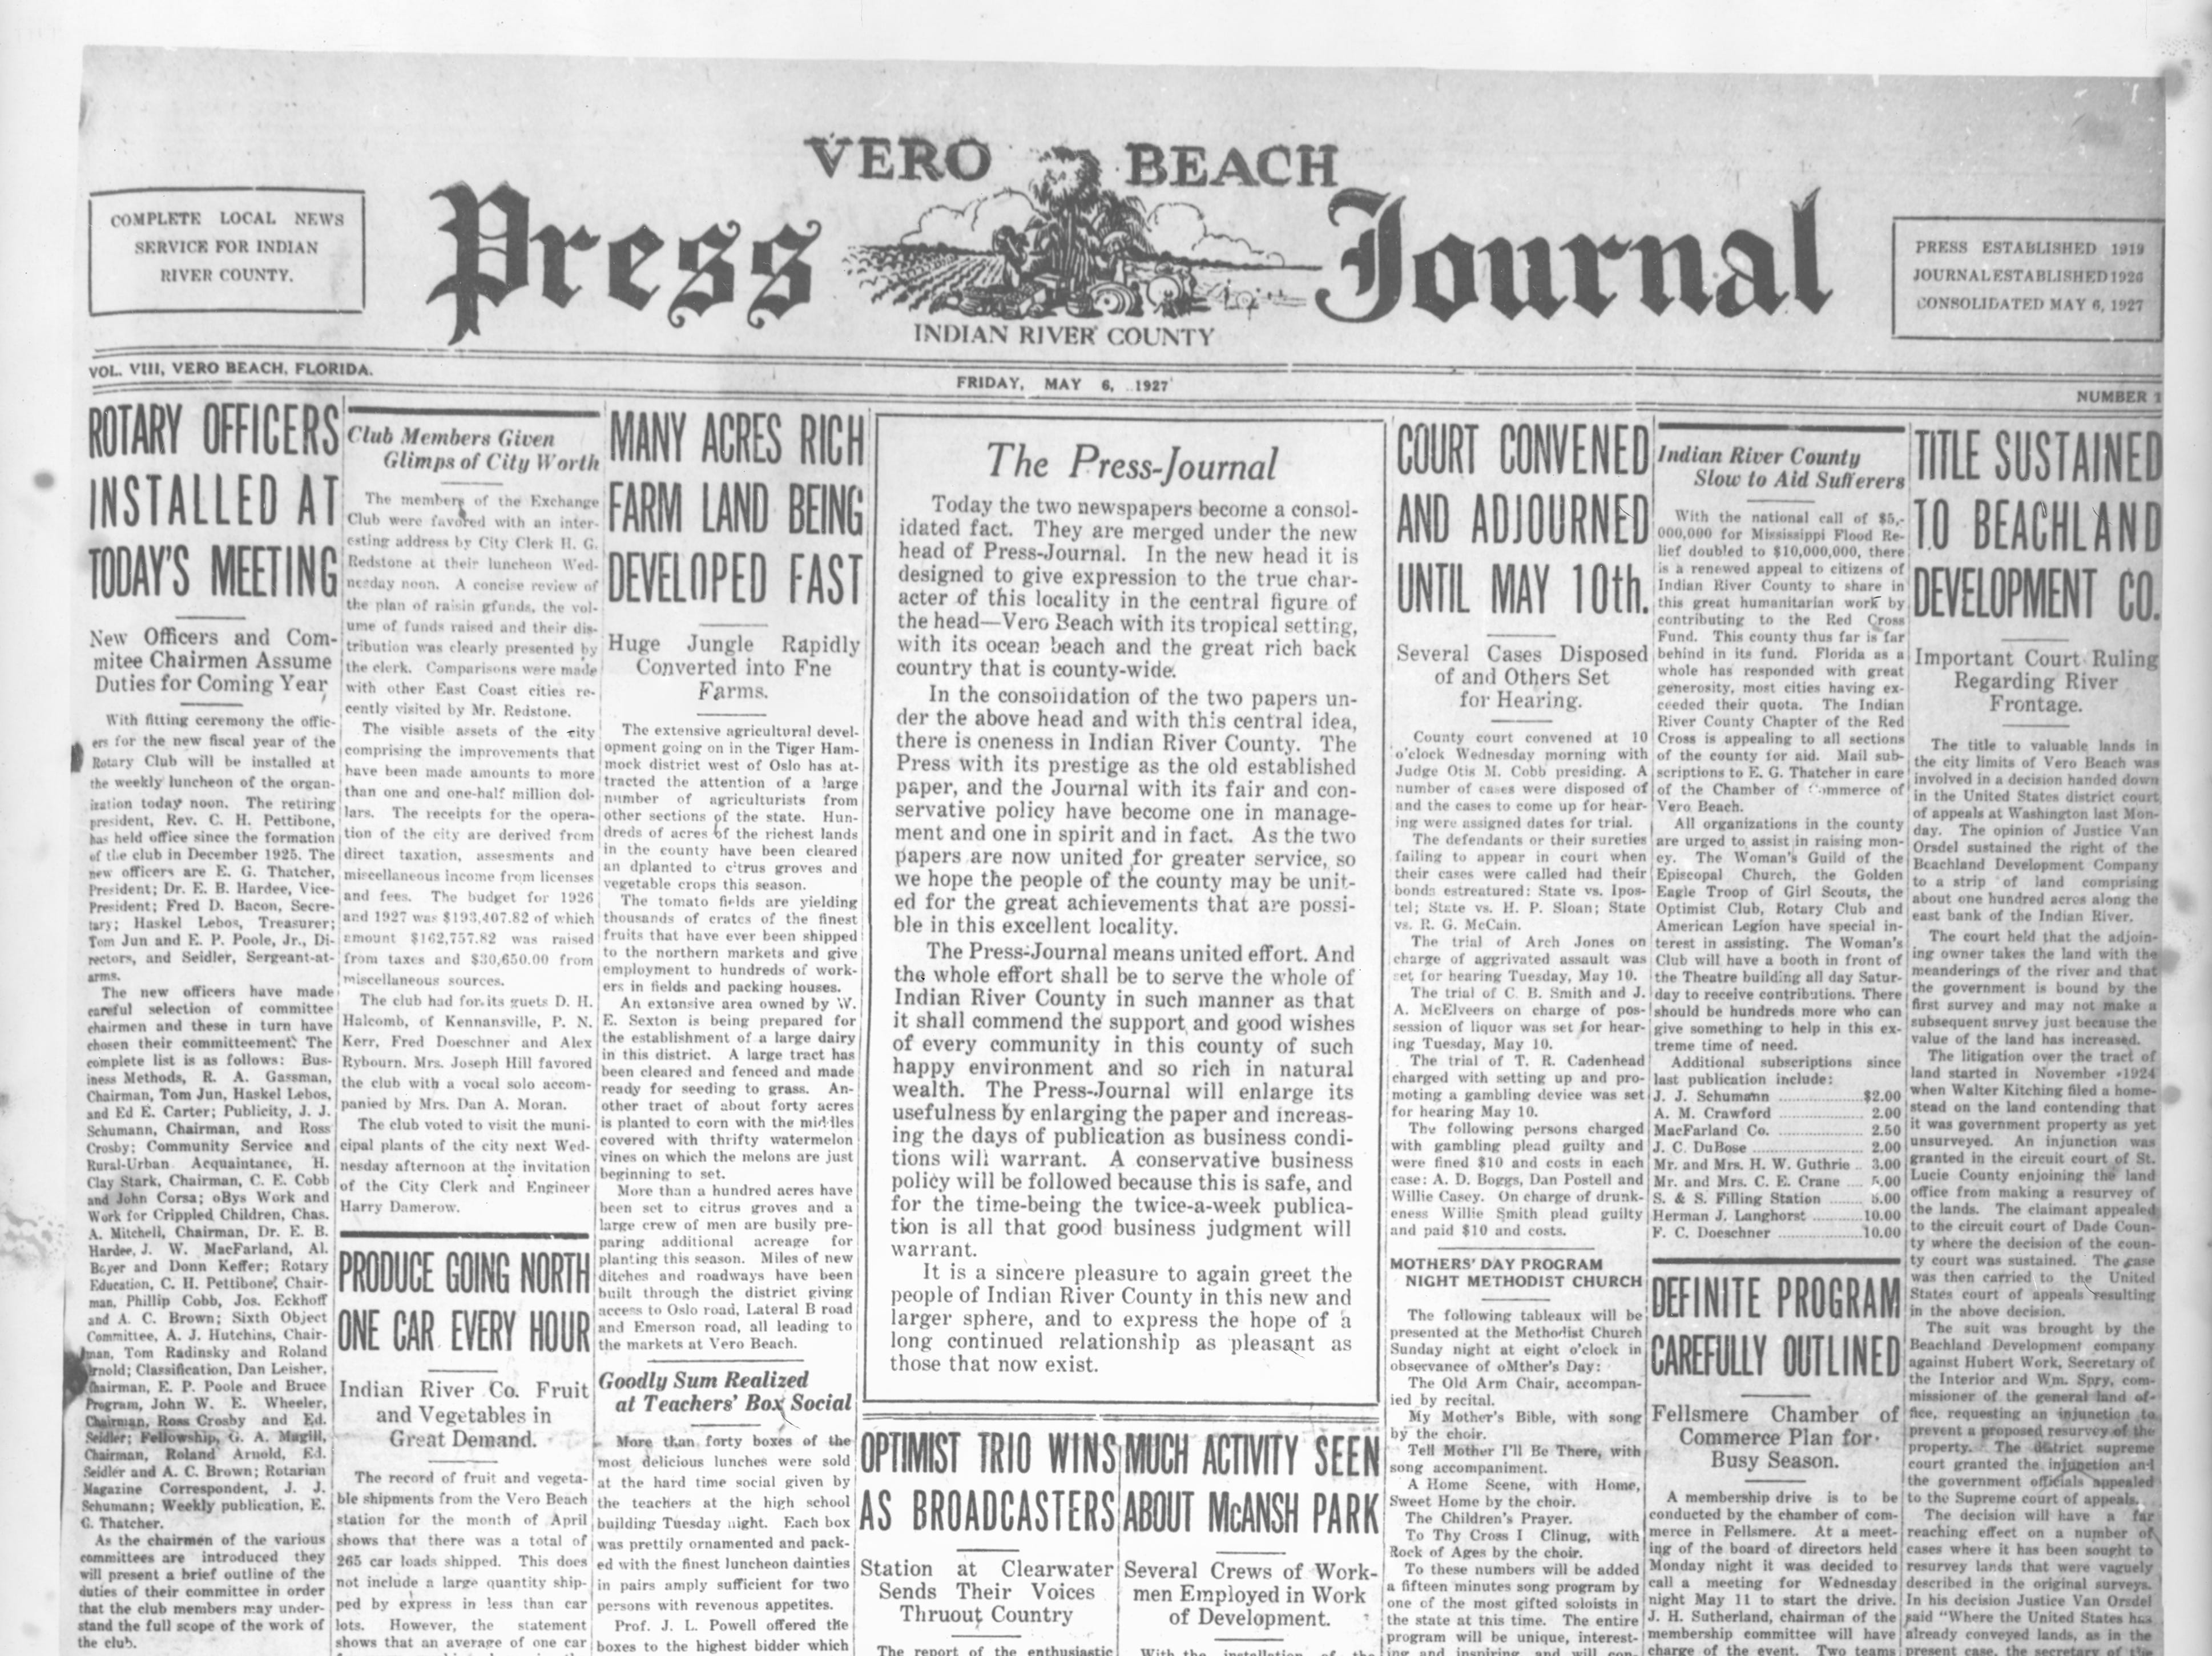 May 6, 1927 - Vero Press merges in 1927 with the Vero Beach Journal, whose owner, John Schumann, becomes editor.